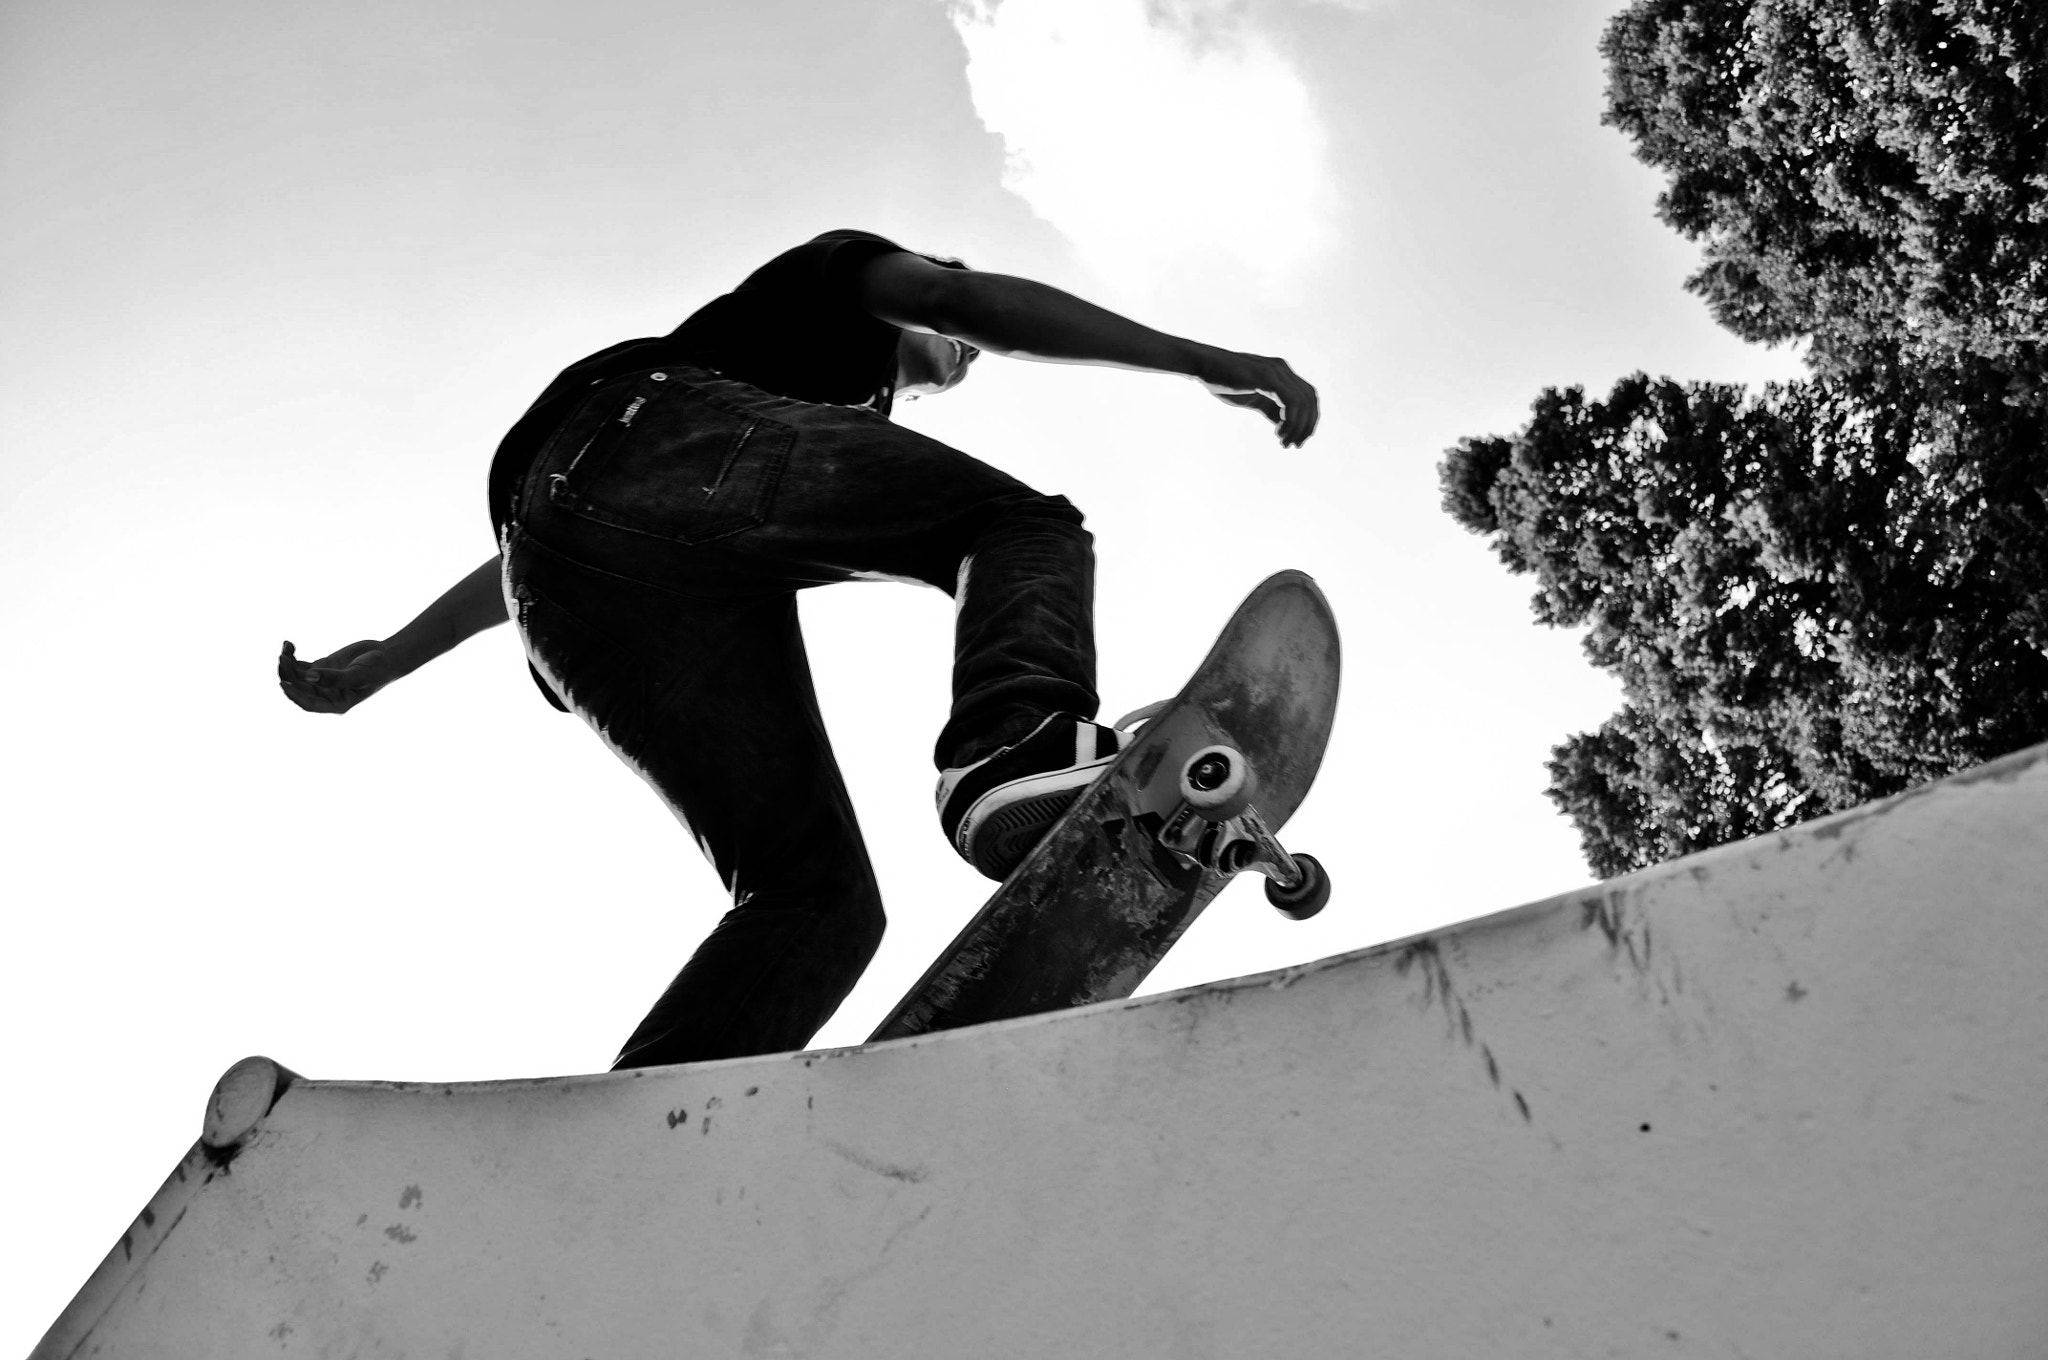 Photograph Skateboarding by Alyse on 500px